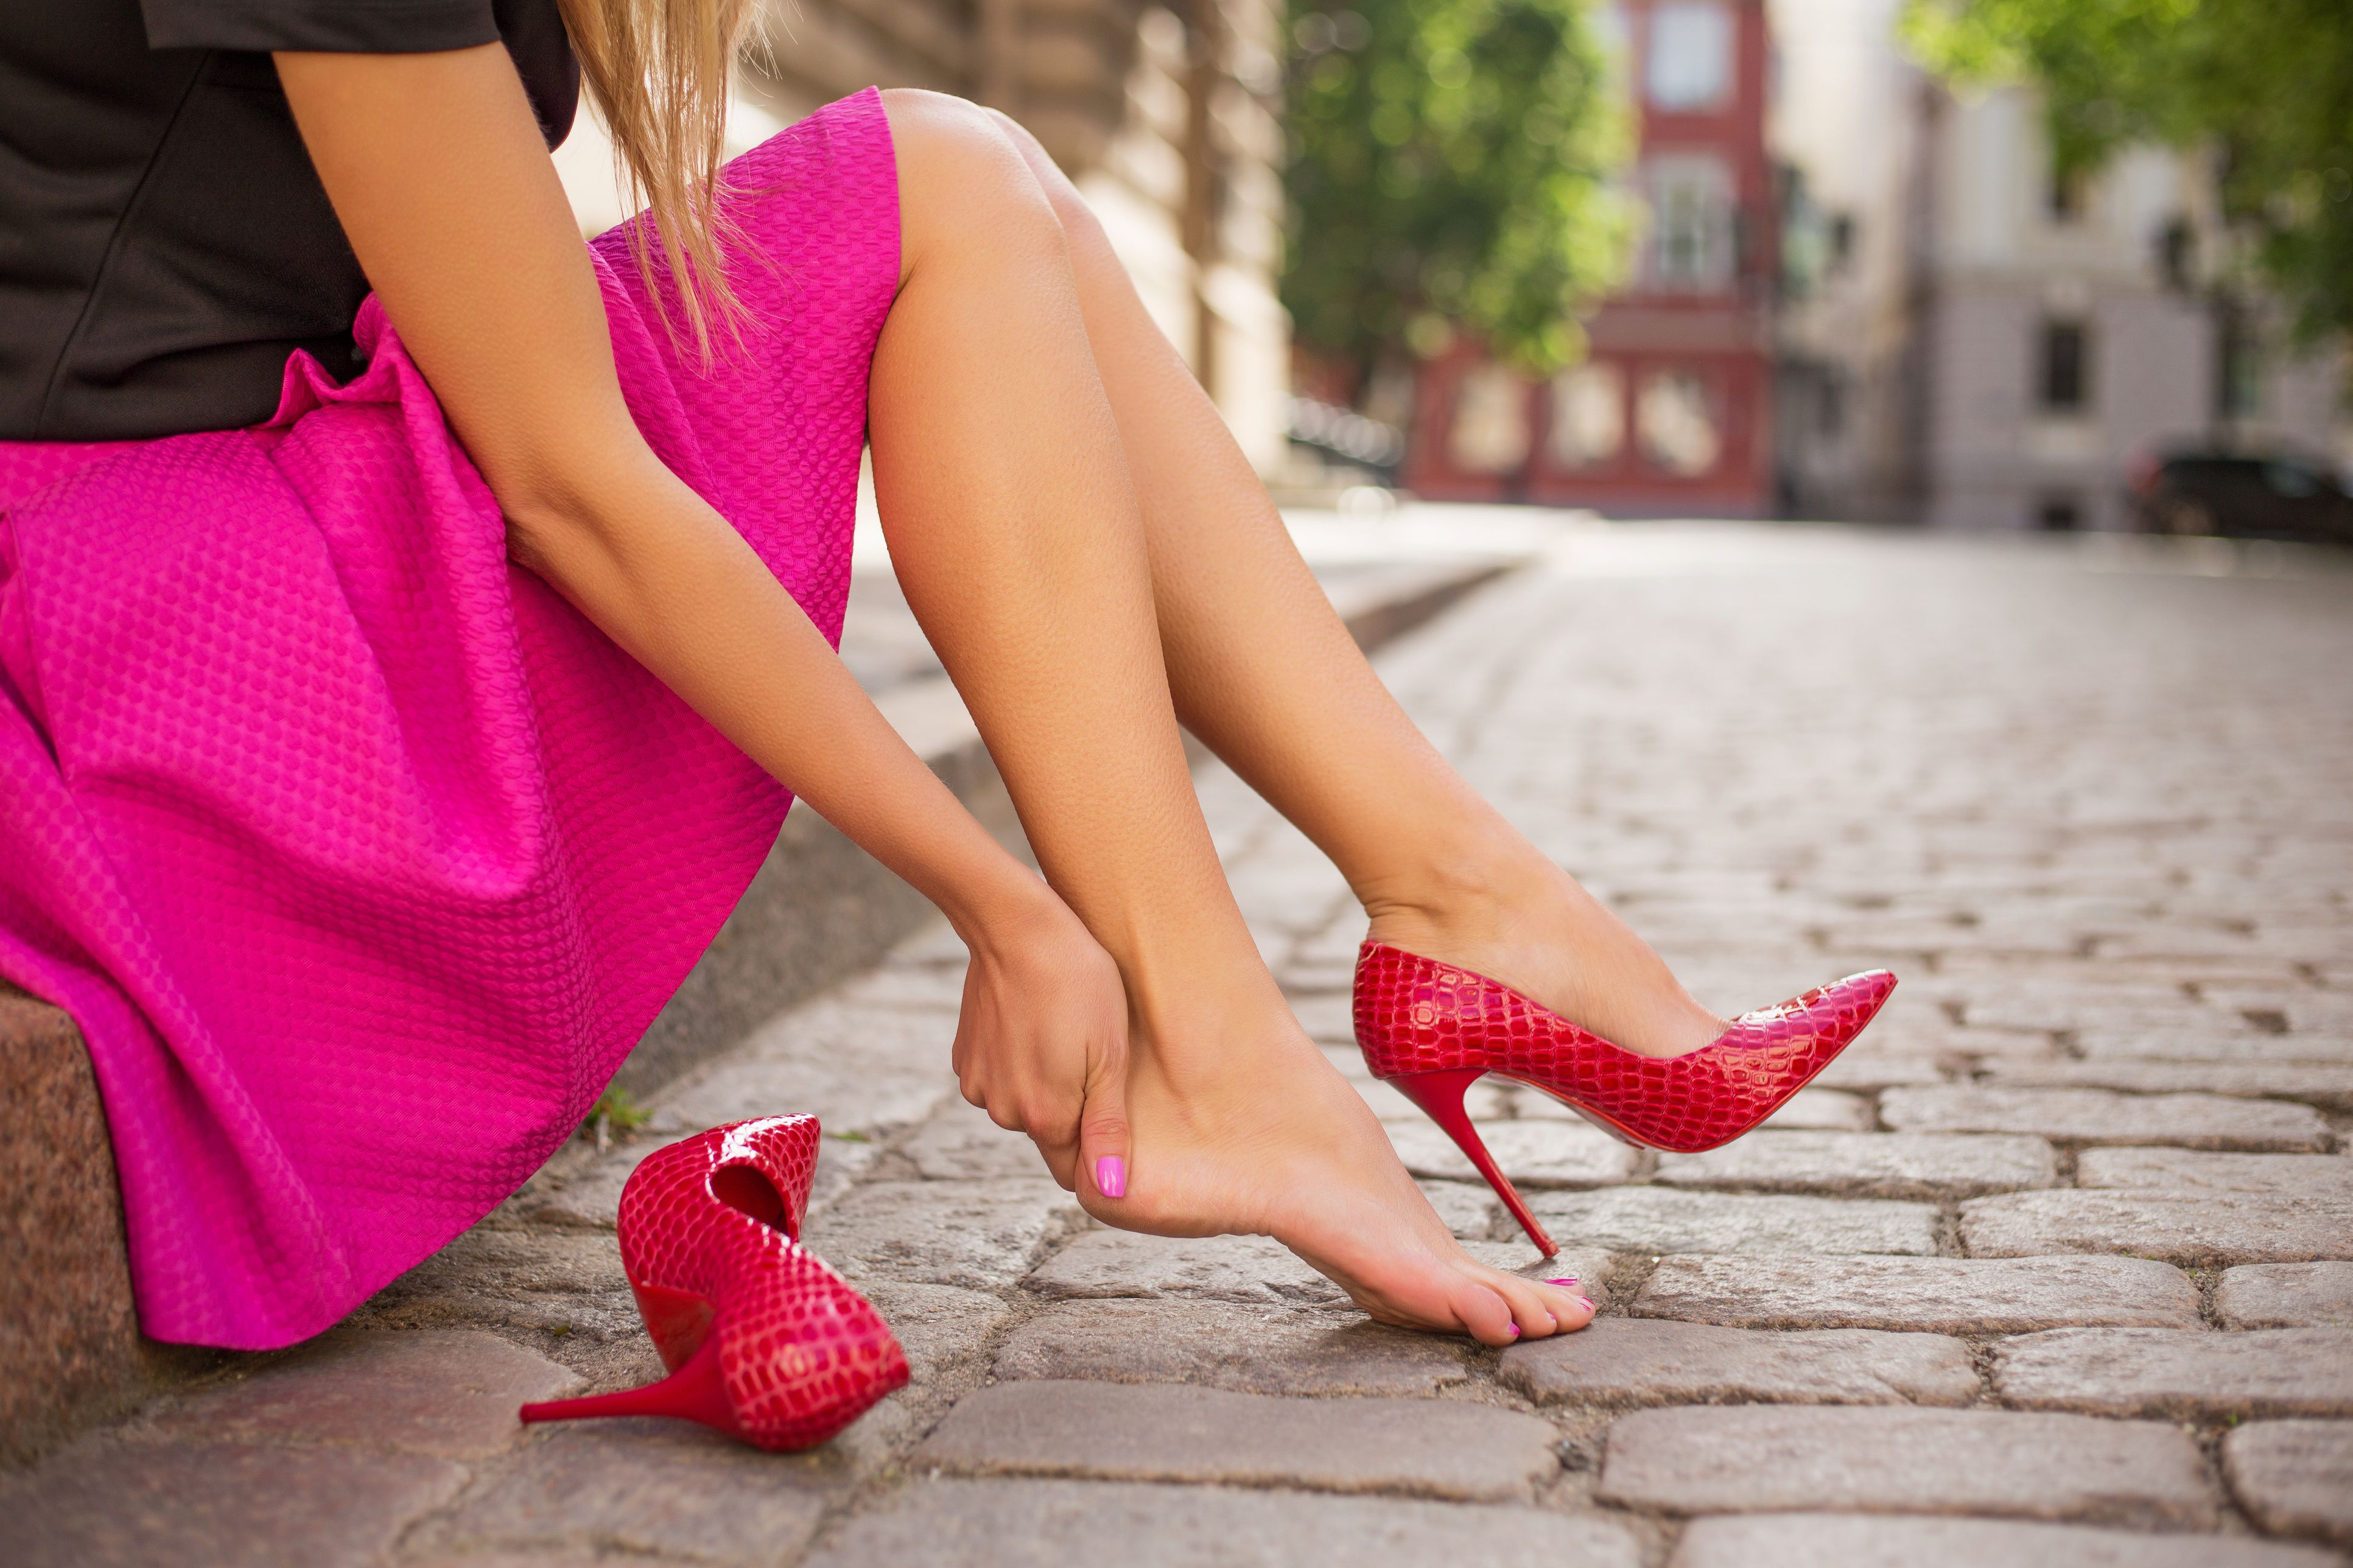 A woman changing her shoes